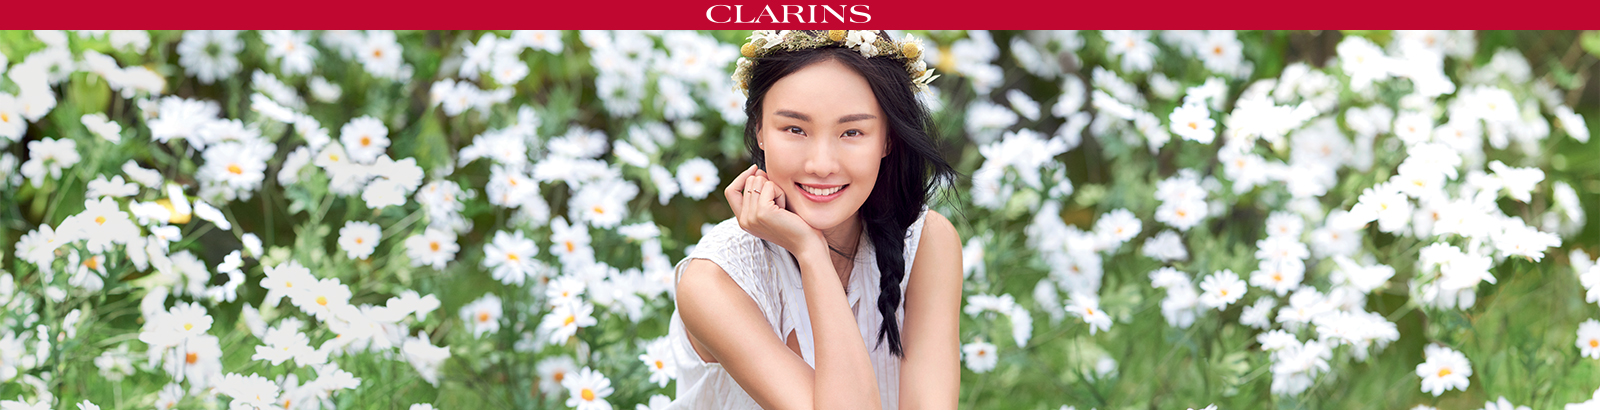 https://www.clarins.fr/on/demandware.static/-/Sites/default/dwaf776a92/1-Clarins/JBC_1600x410_V2.jpg